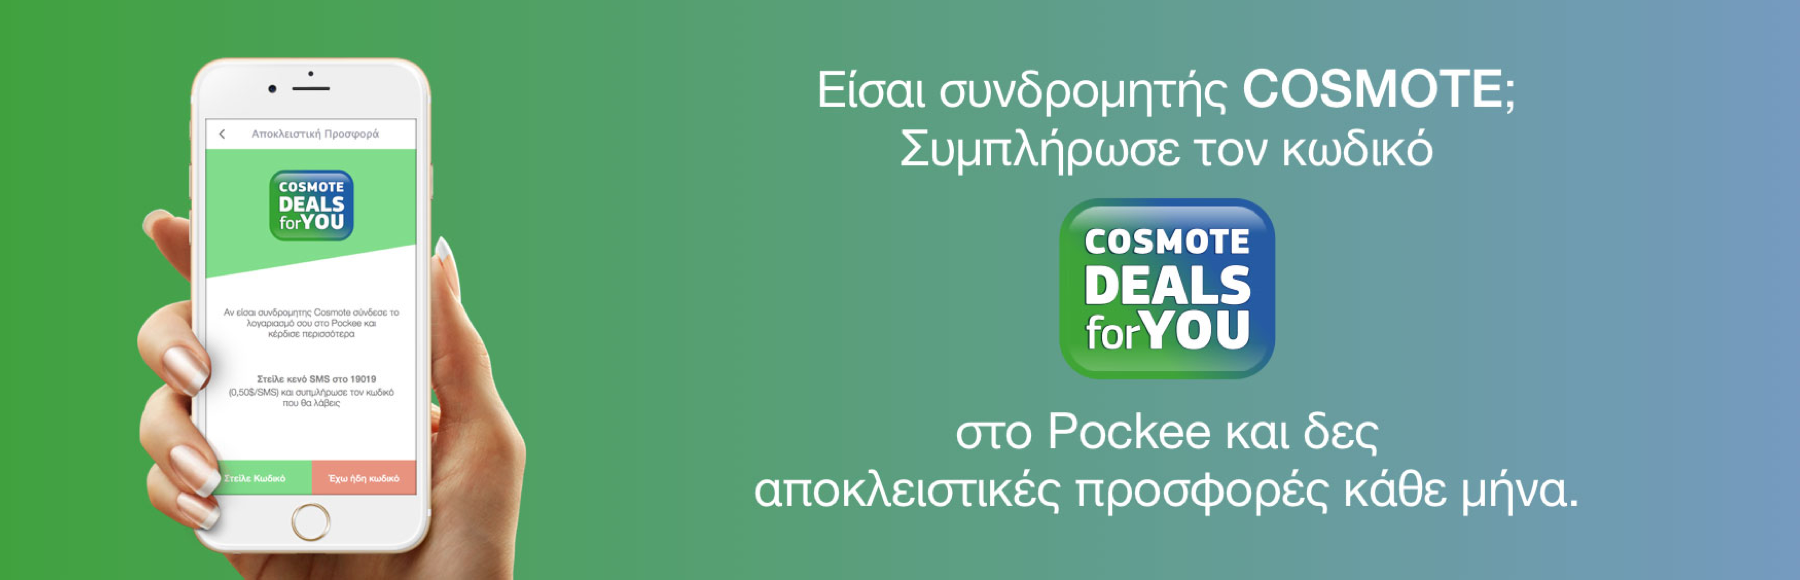 6ea77dcae30 Προσφορές COSMOTE DEALS for YOU - Pockee